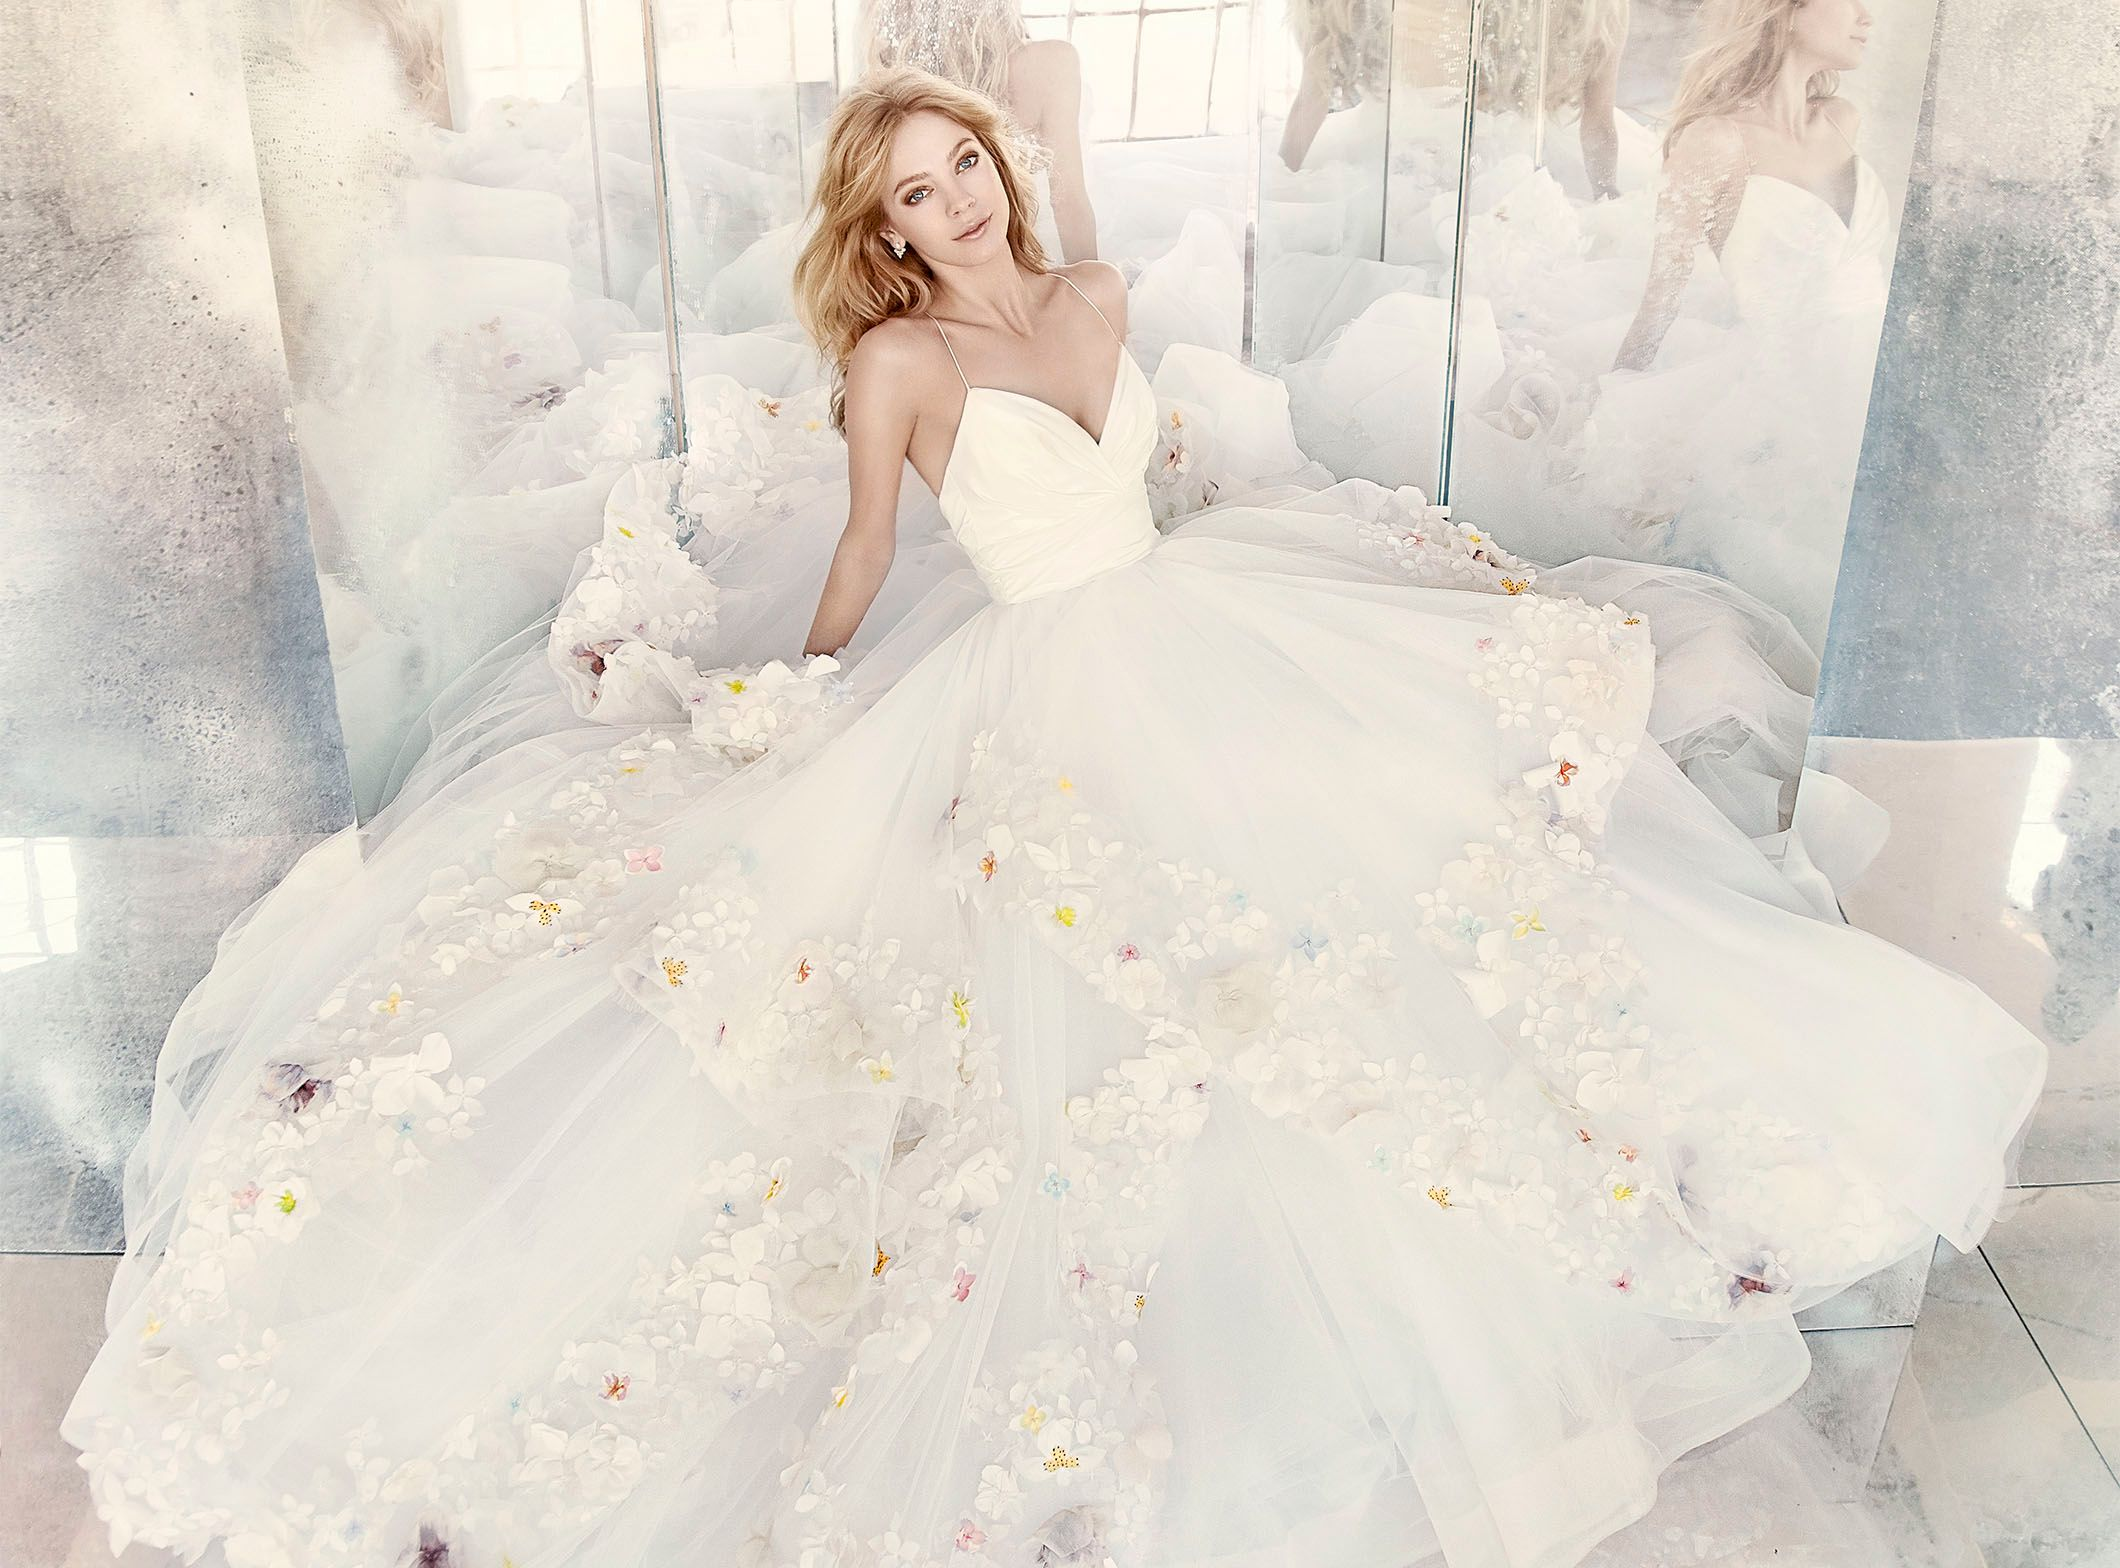 Magnificent Bridal Gowns Okc Photos - Wedding and flowers ispiration ...